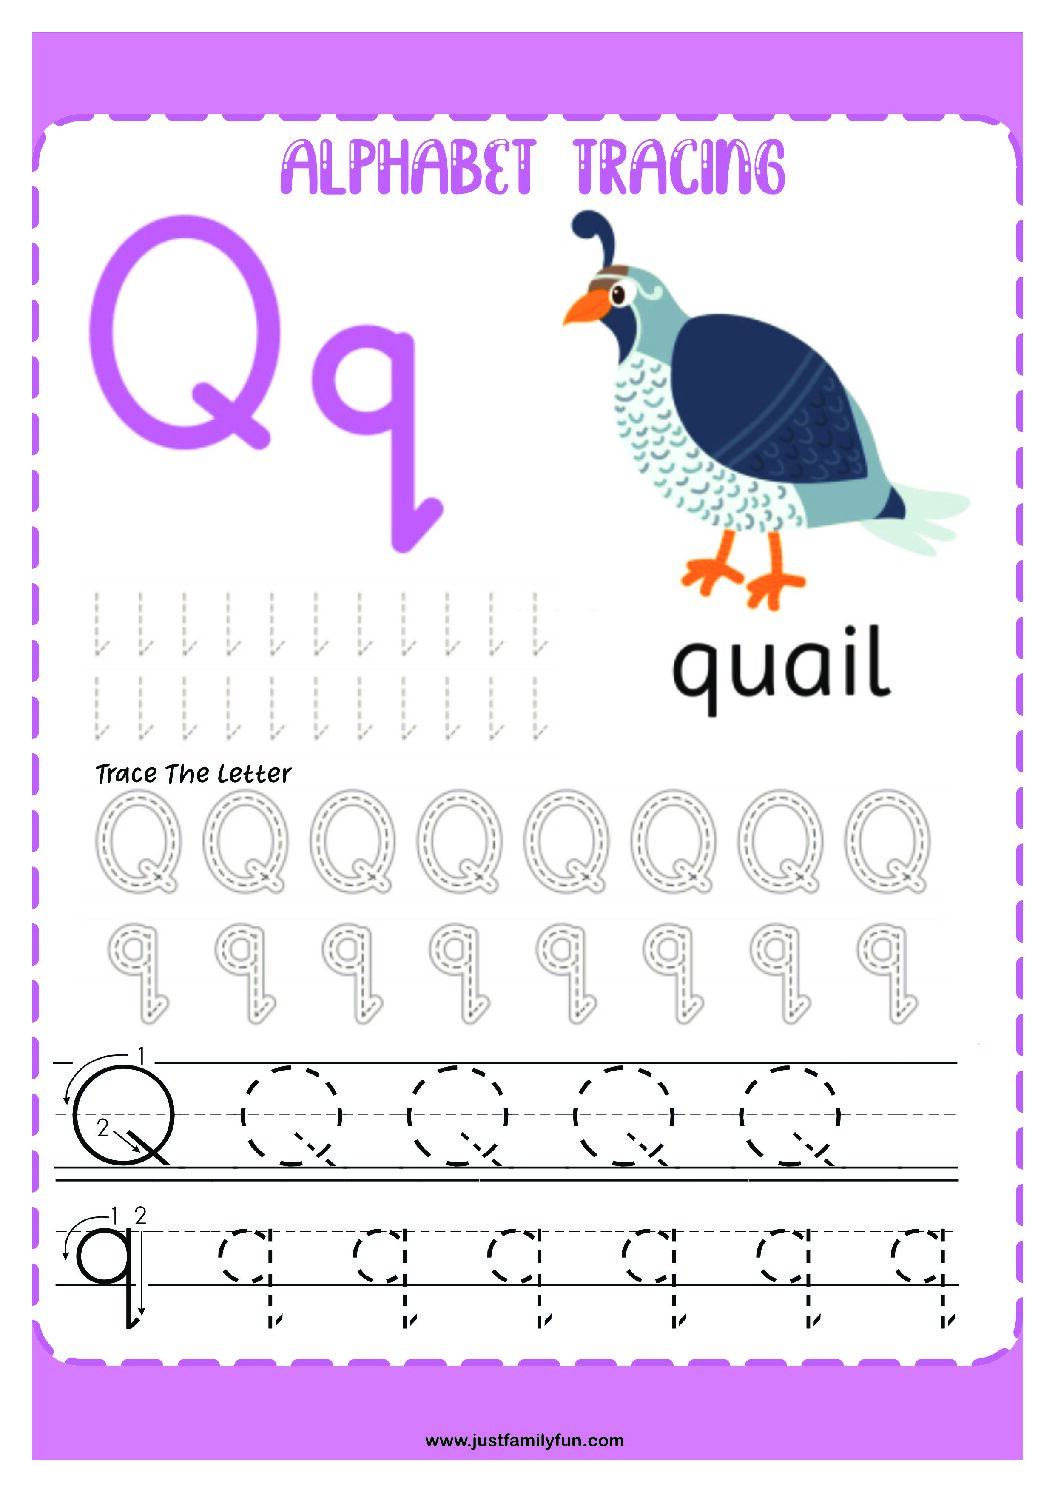 Alphabets_17-pdf Free Printable Trace The Alphabet Worksheets for Kids.